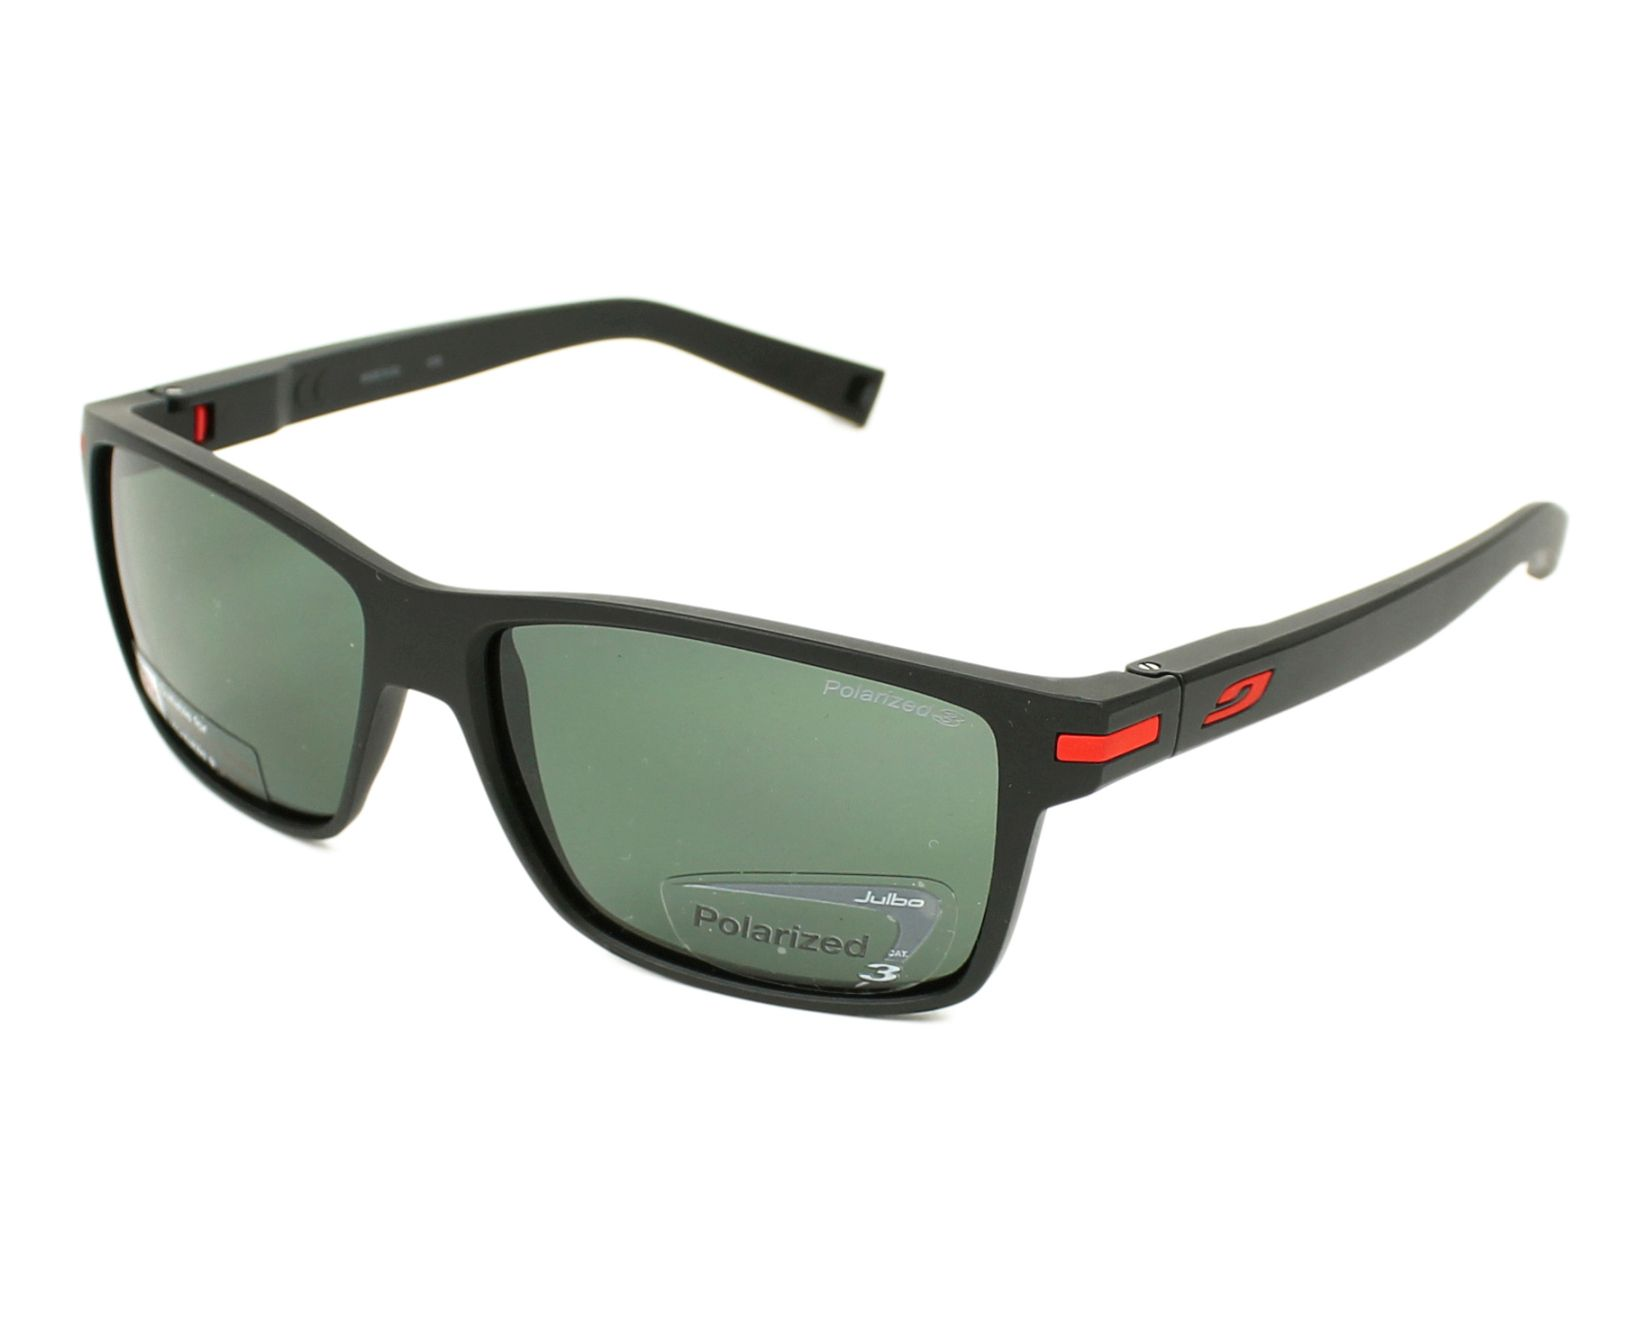 37f97c4206 Polarized. Sunglasses Julbo J494 9022 - Black profile view